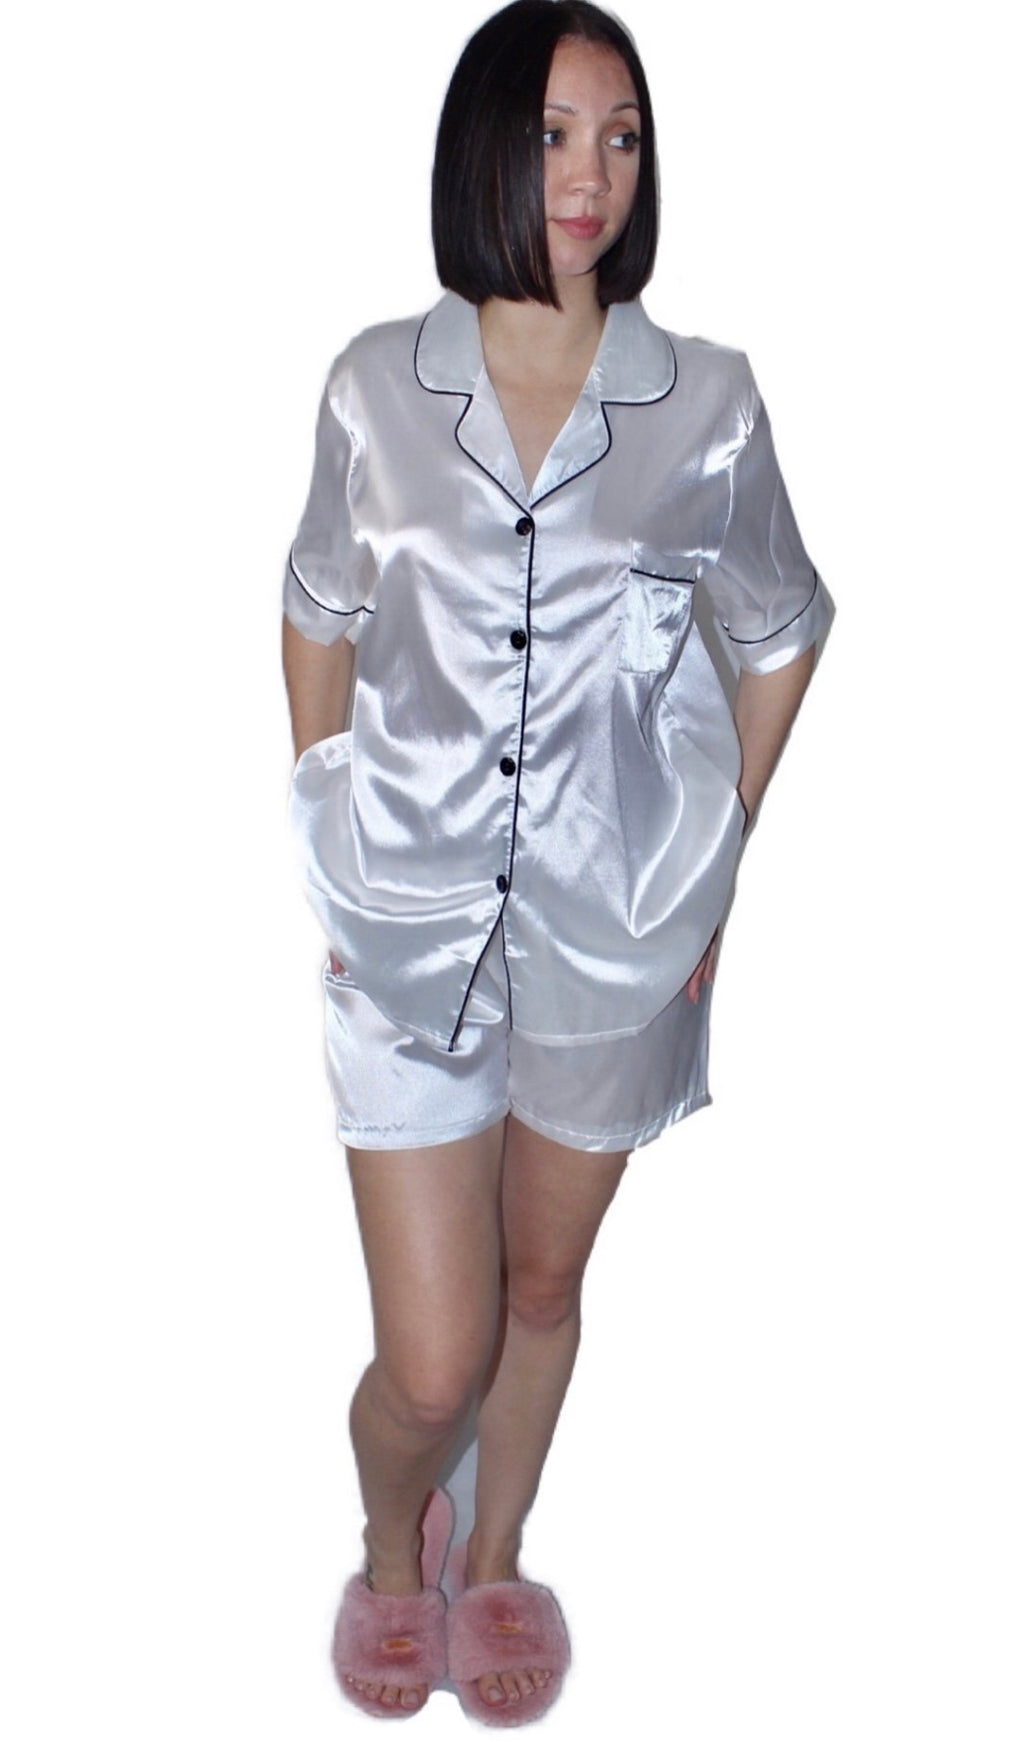 Milan 100% Pure Mulberry Silk Night Set with Button Up Short Sleeve Blouse and Shorts